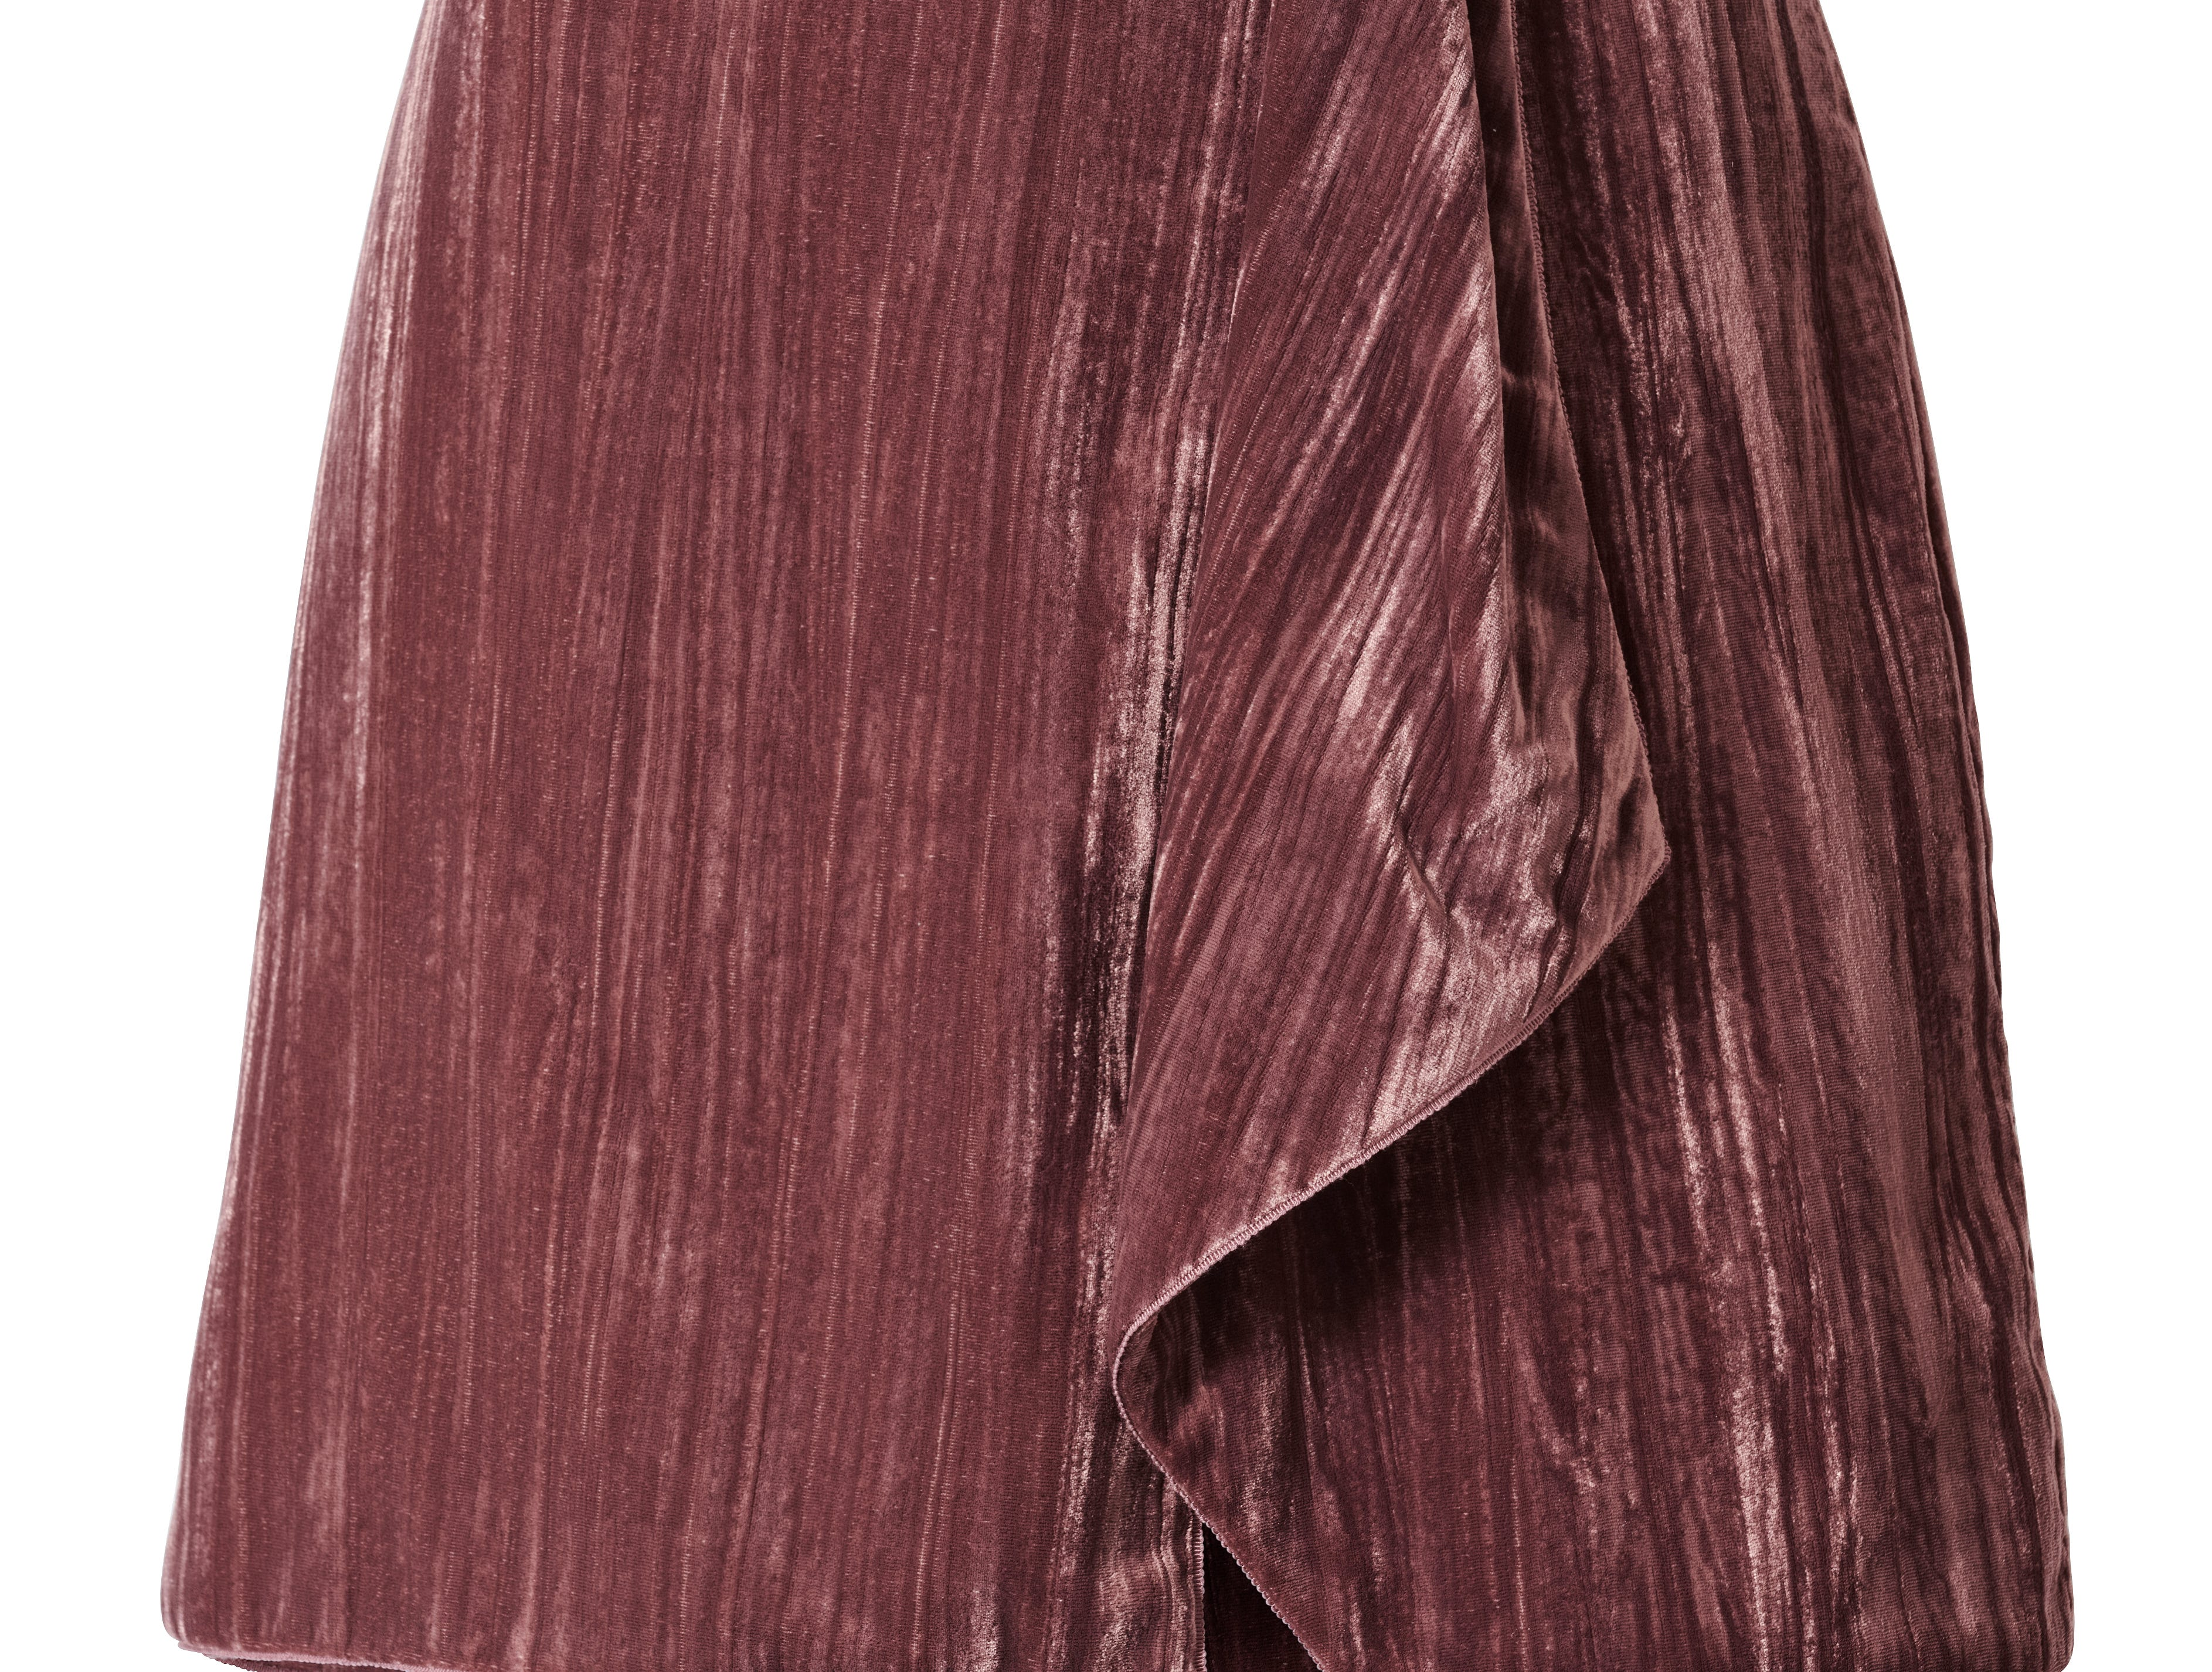 H&M's Conscious Exclusive collection for autumn and winter is it first to use velvet fabric made from recycled polyester. Here, a skirt made from the material that is priced at $59.99.